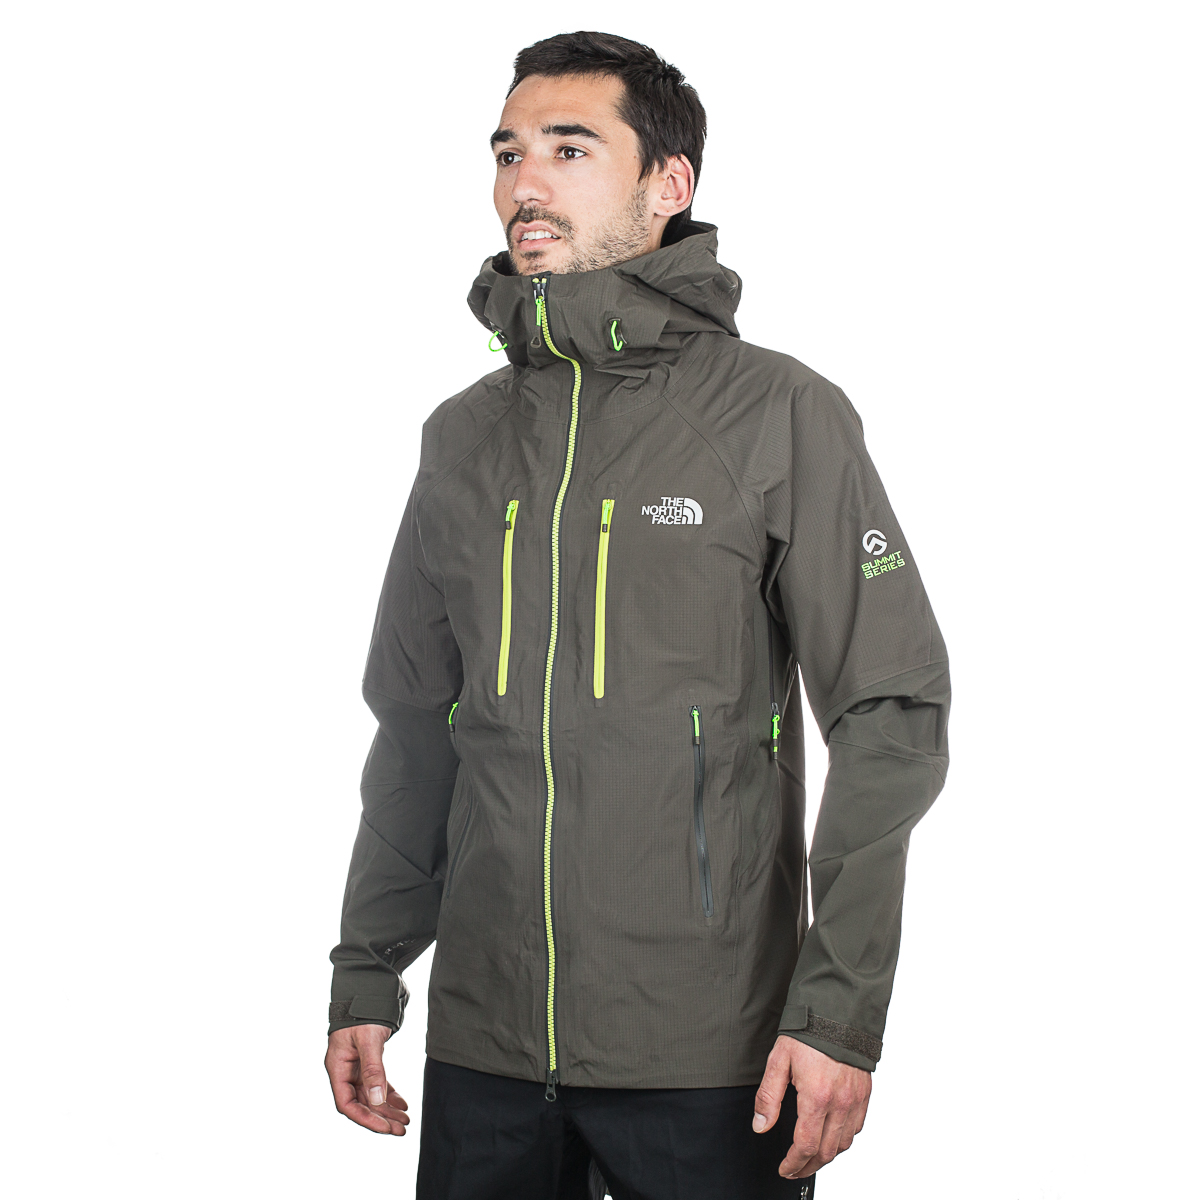 The North Face Front Point Jacket Technical Jackets